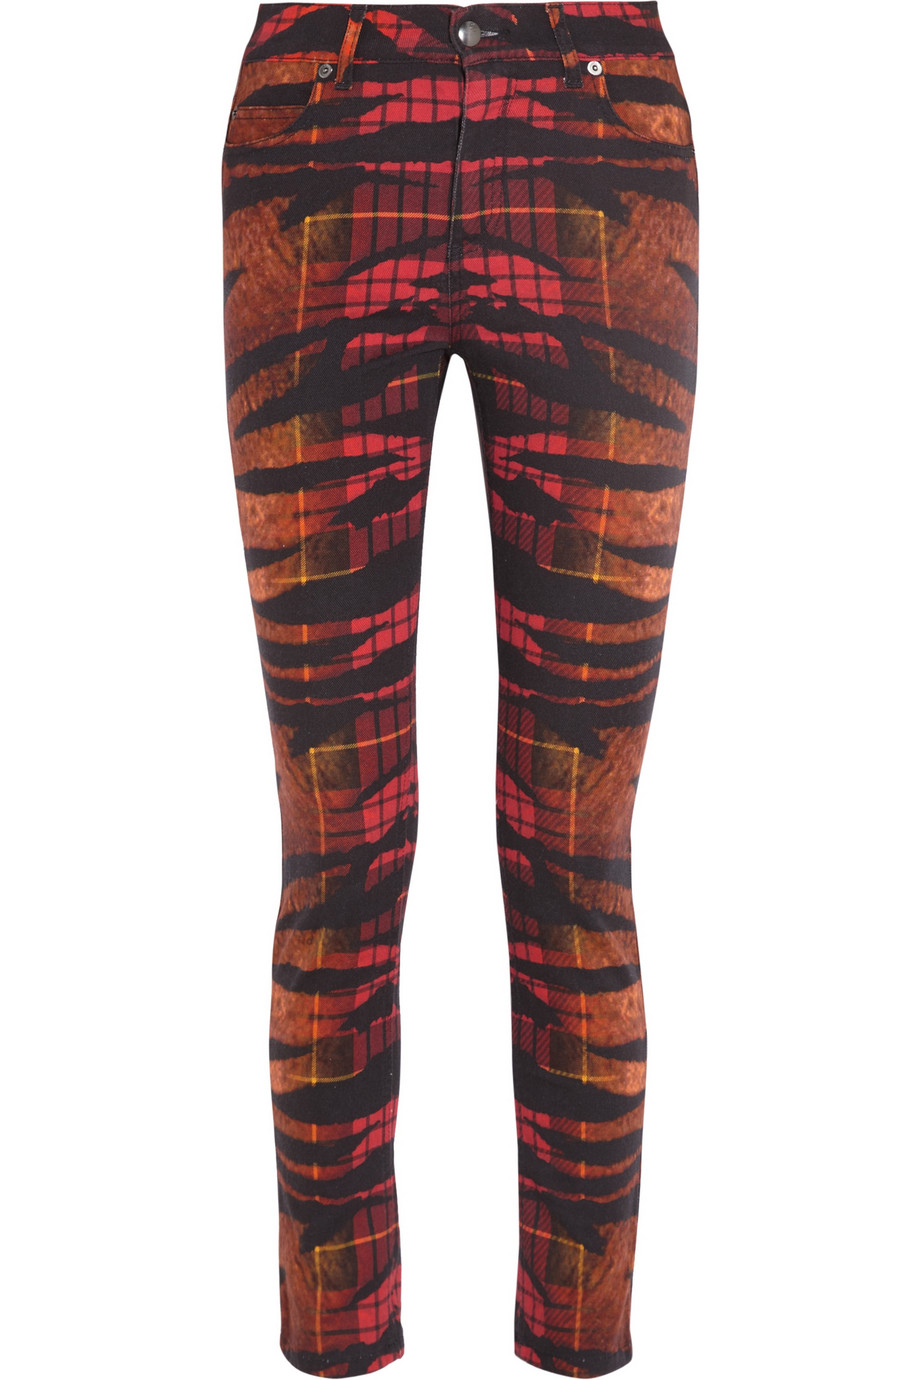 MCQ ALEXANDER McQUEEN Tiger Tartan Printed High-Waisted Skinny Jeans buy HERE